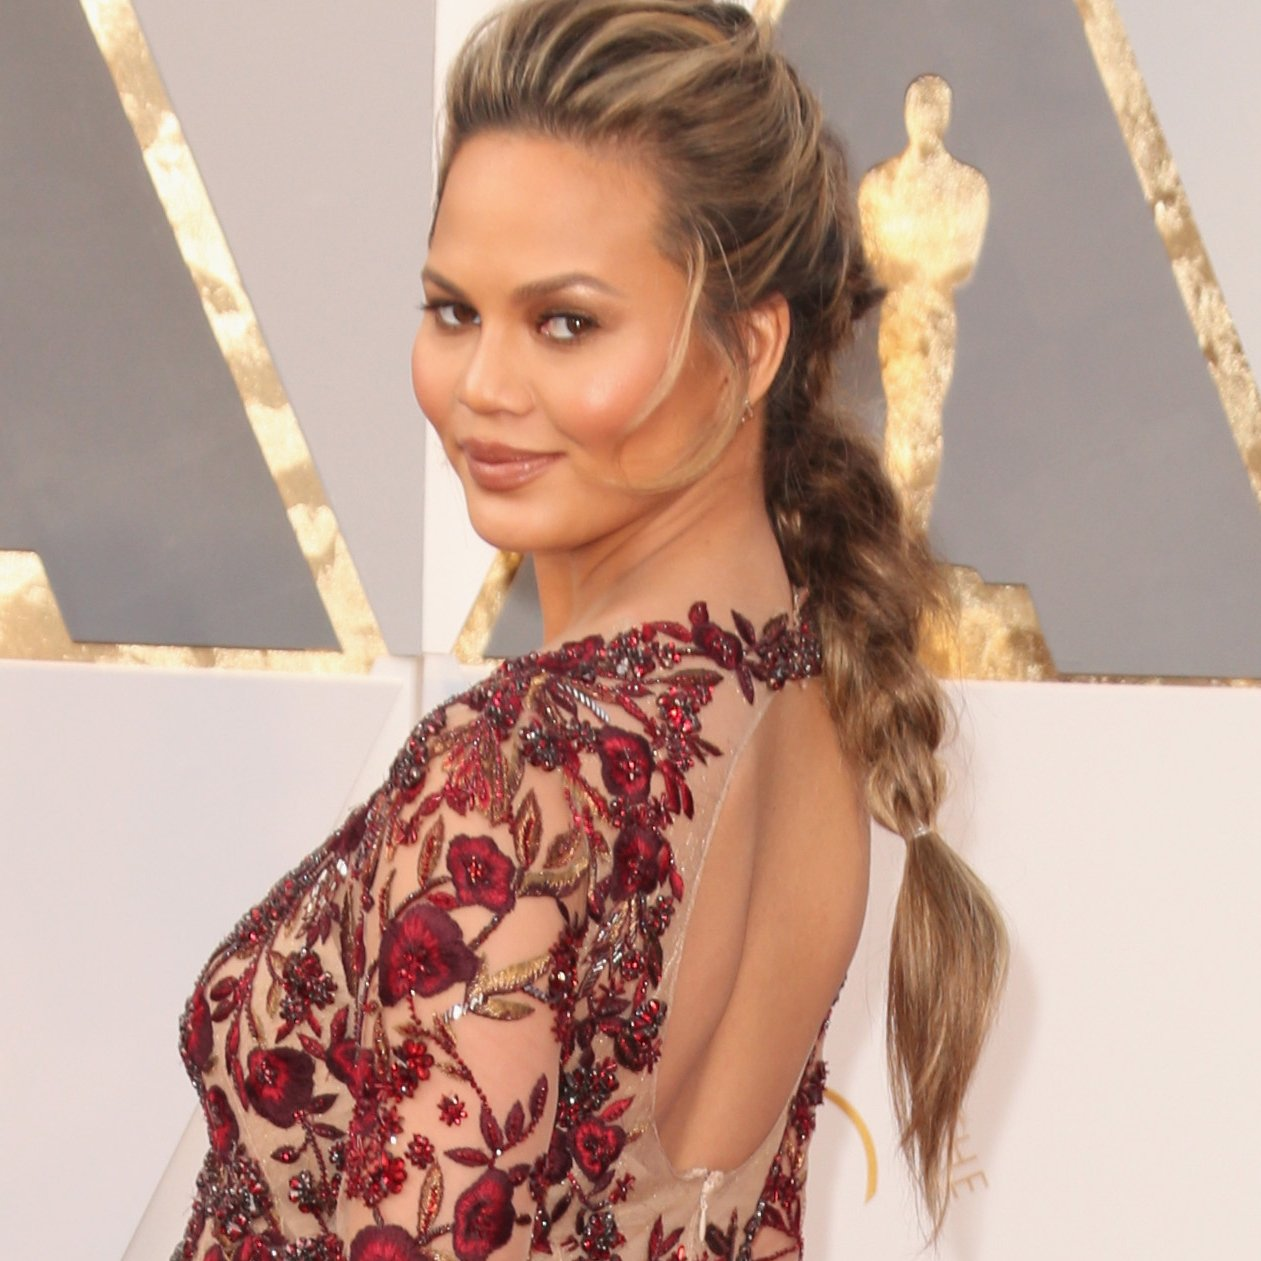 Chrissy Teigen messy braids hairstyles at Oscars